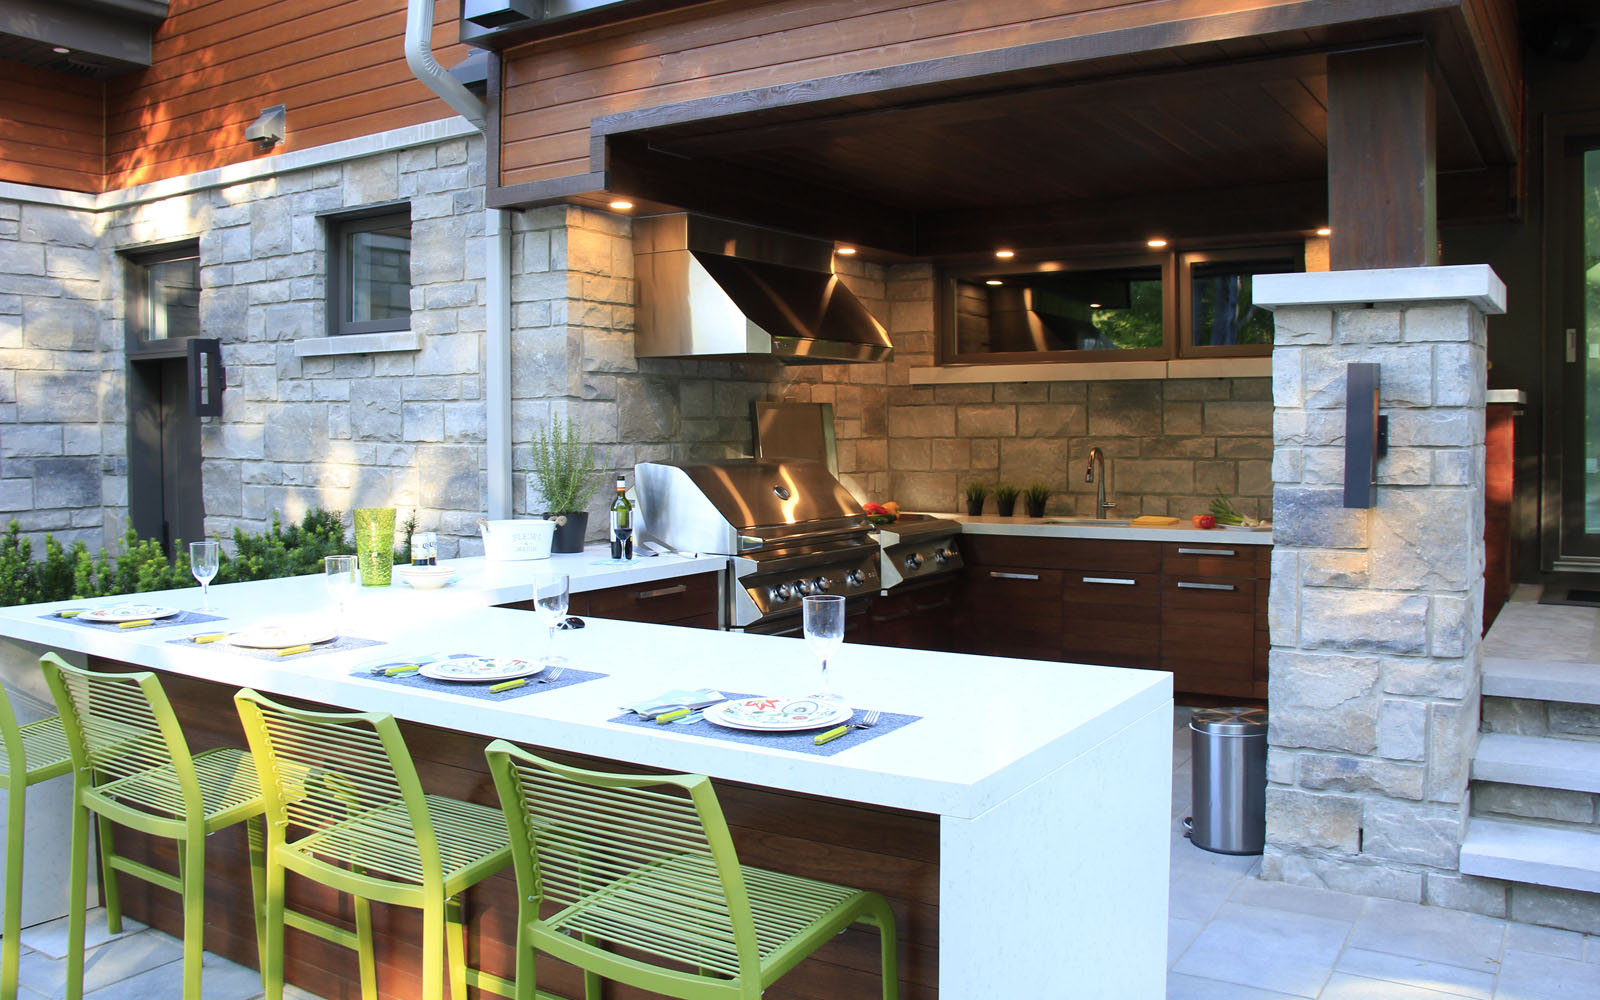 Custom-made outdoor kitchen for a real backyard retreat